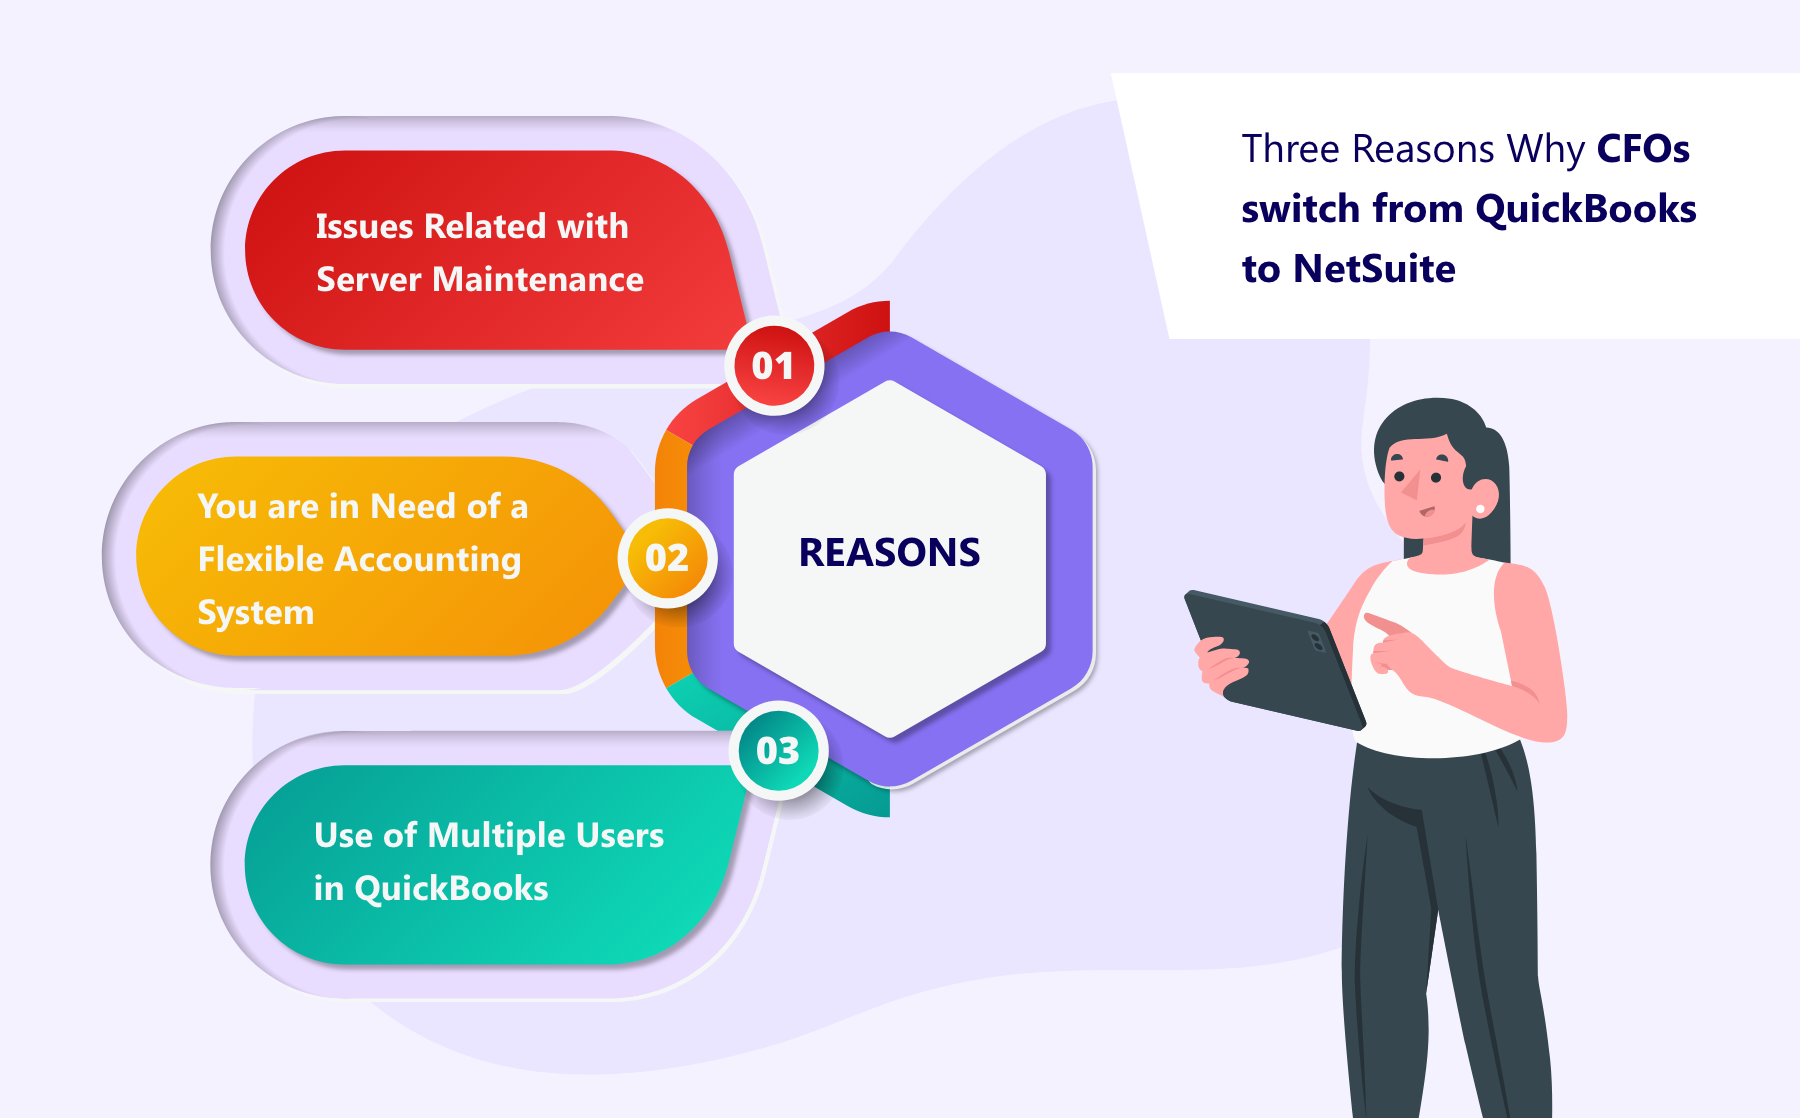 Reasons to switch to NetSuite